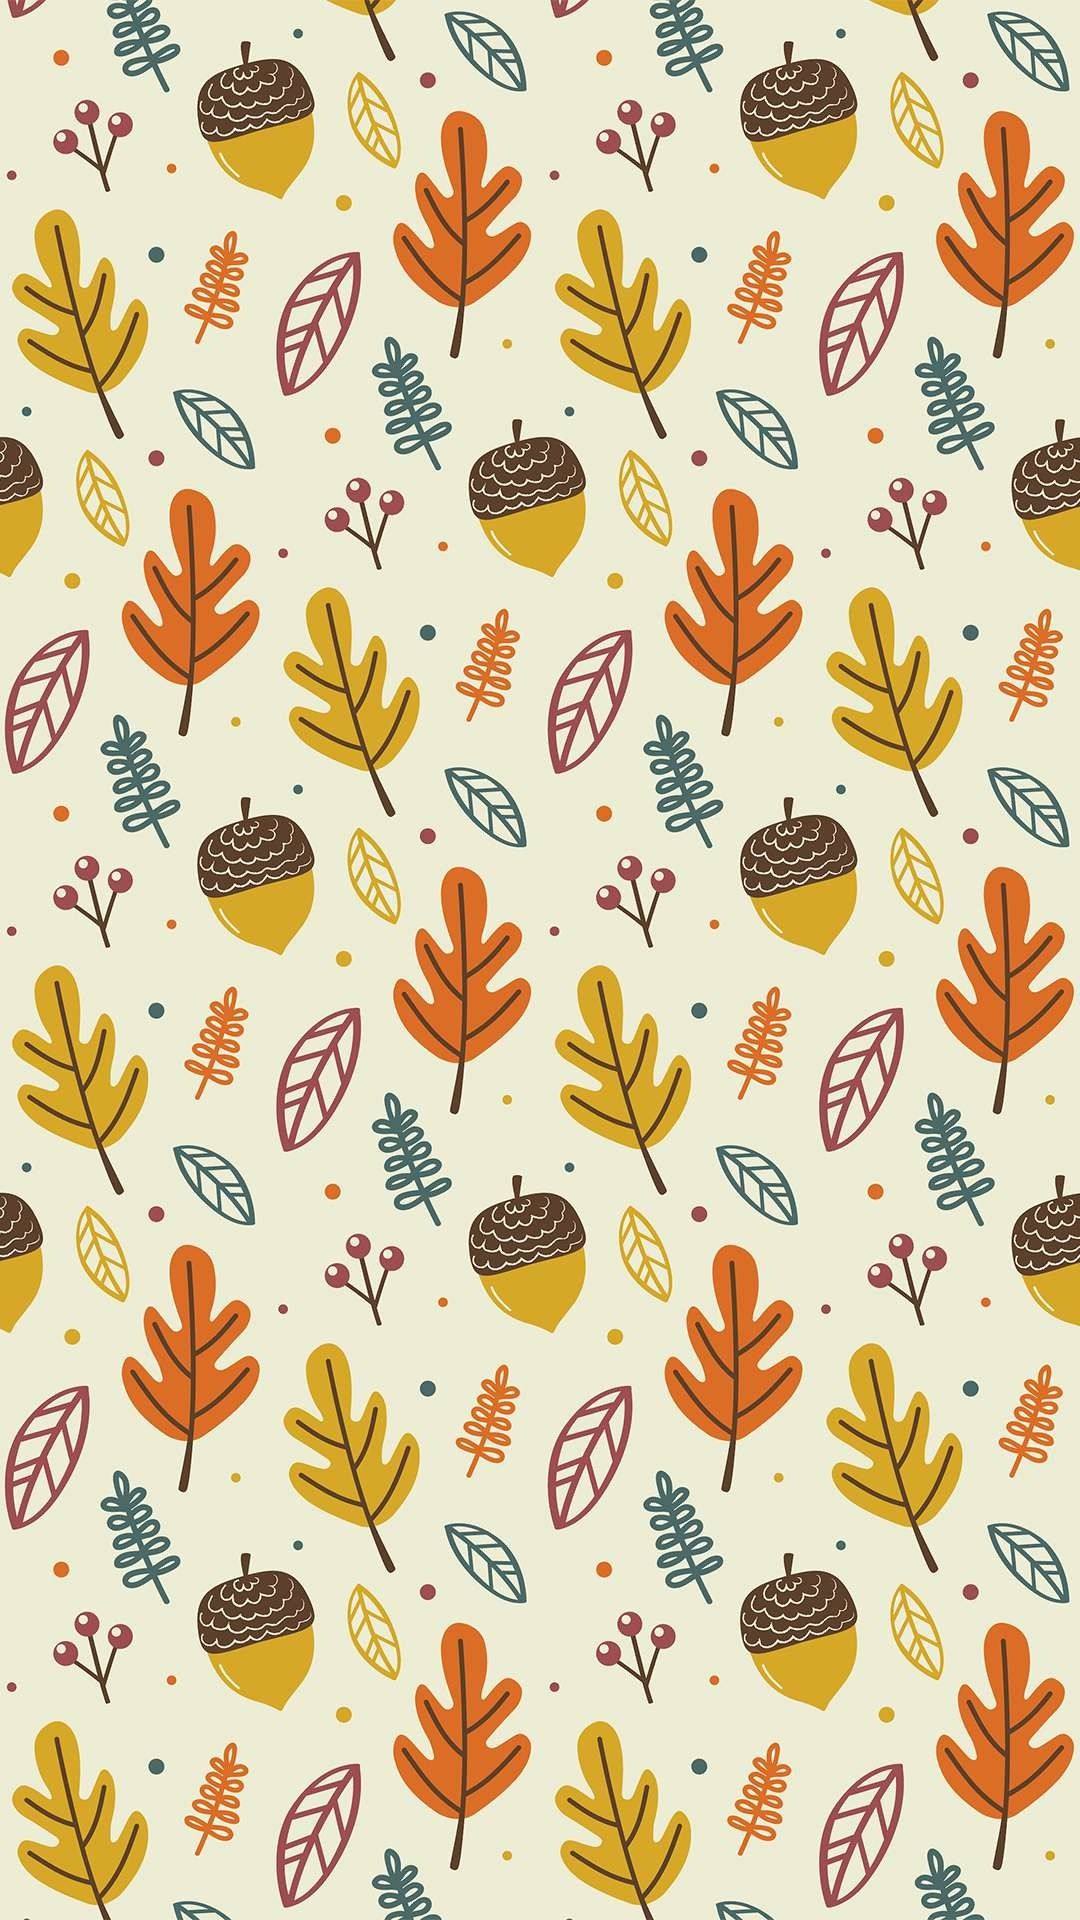 Pin by Samantha Keller on ..1 Fall wallpaper